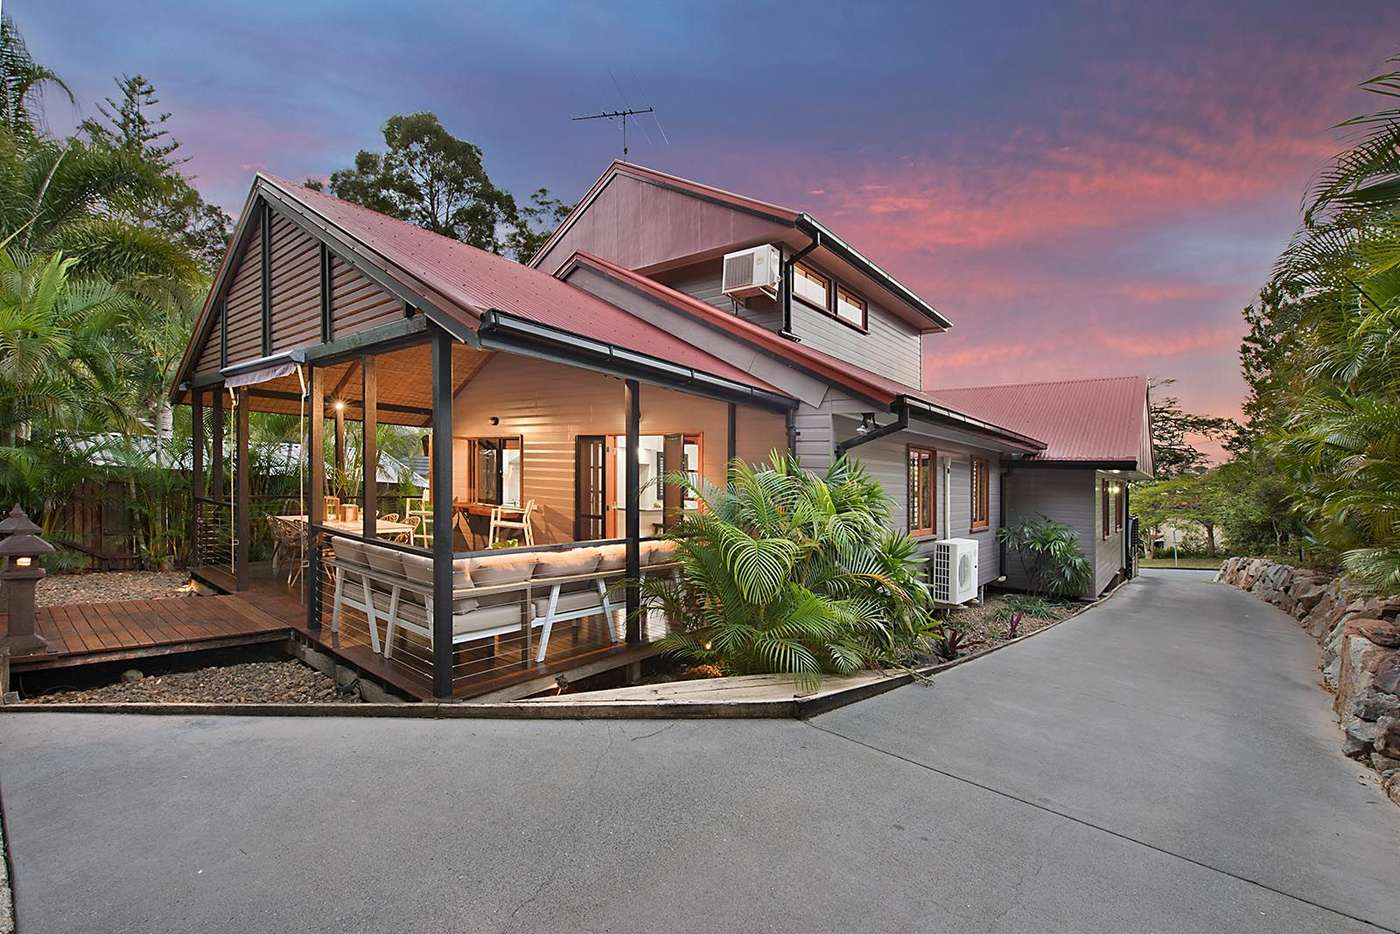 Main view of Homely house listing, 25 Gosford Street, Mount Gravatt QLD 4122